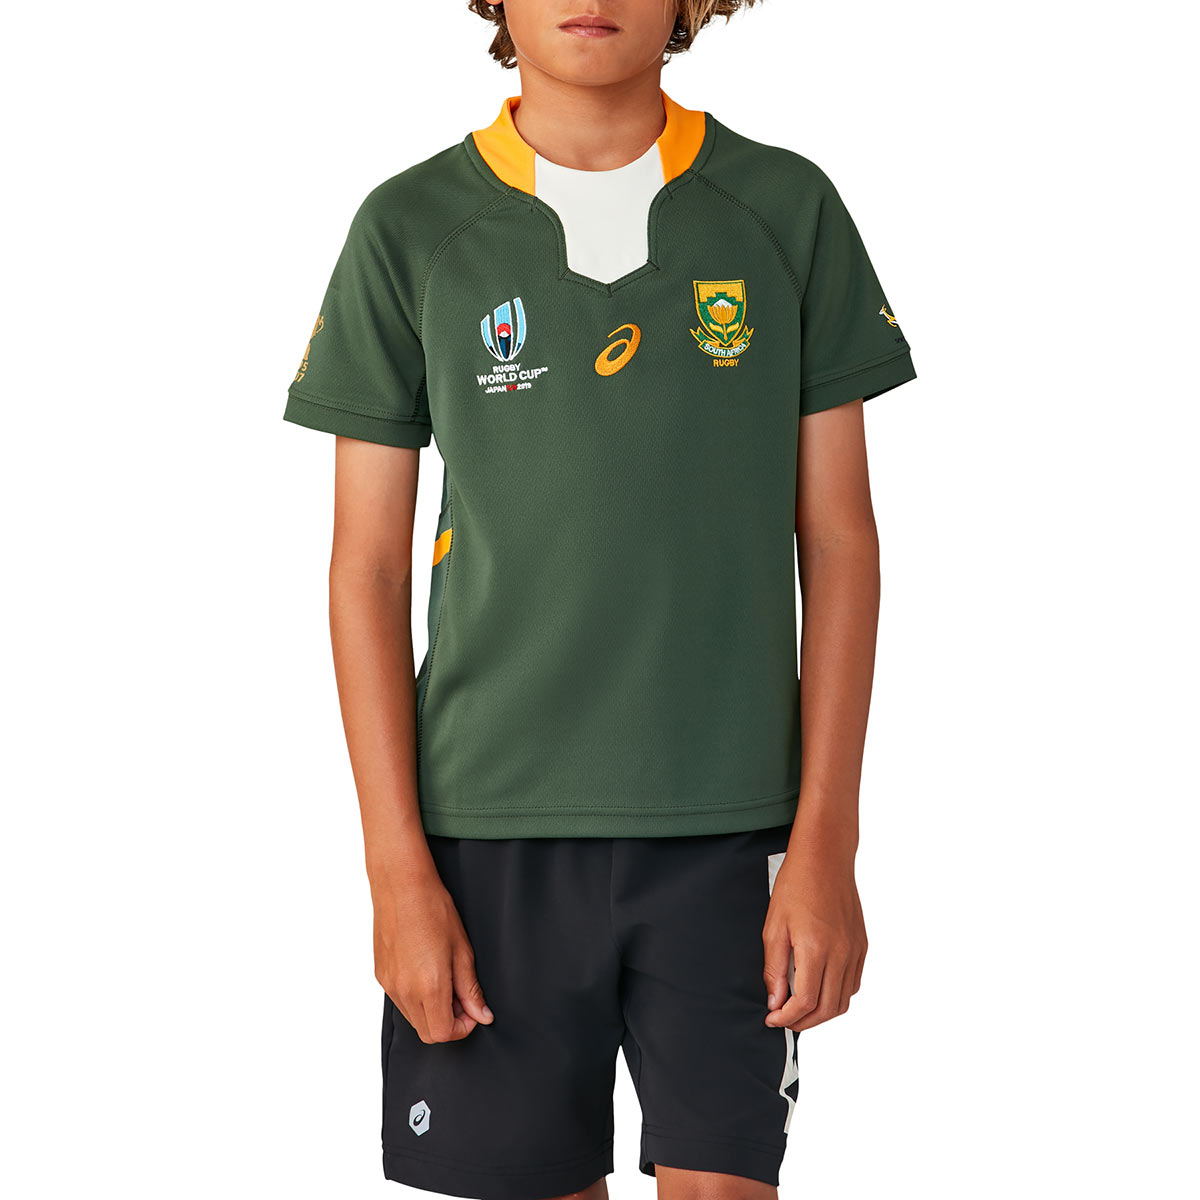 ba9f631a5b9 Rugby World Cup 2019 South Africa Home Rugby Shirt S/S Kids - Front